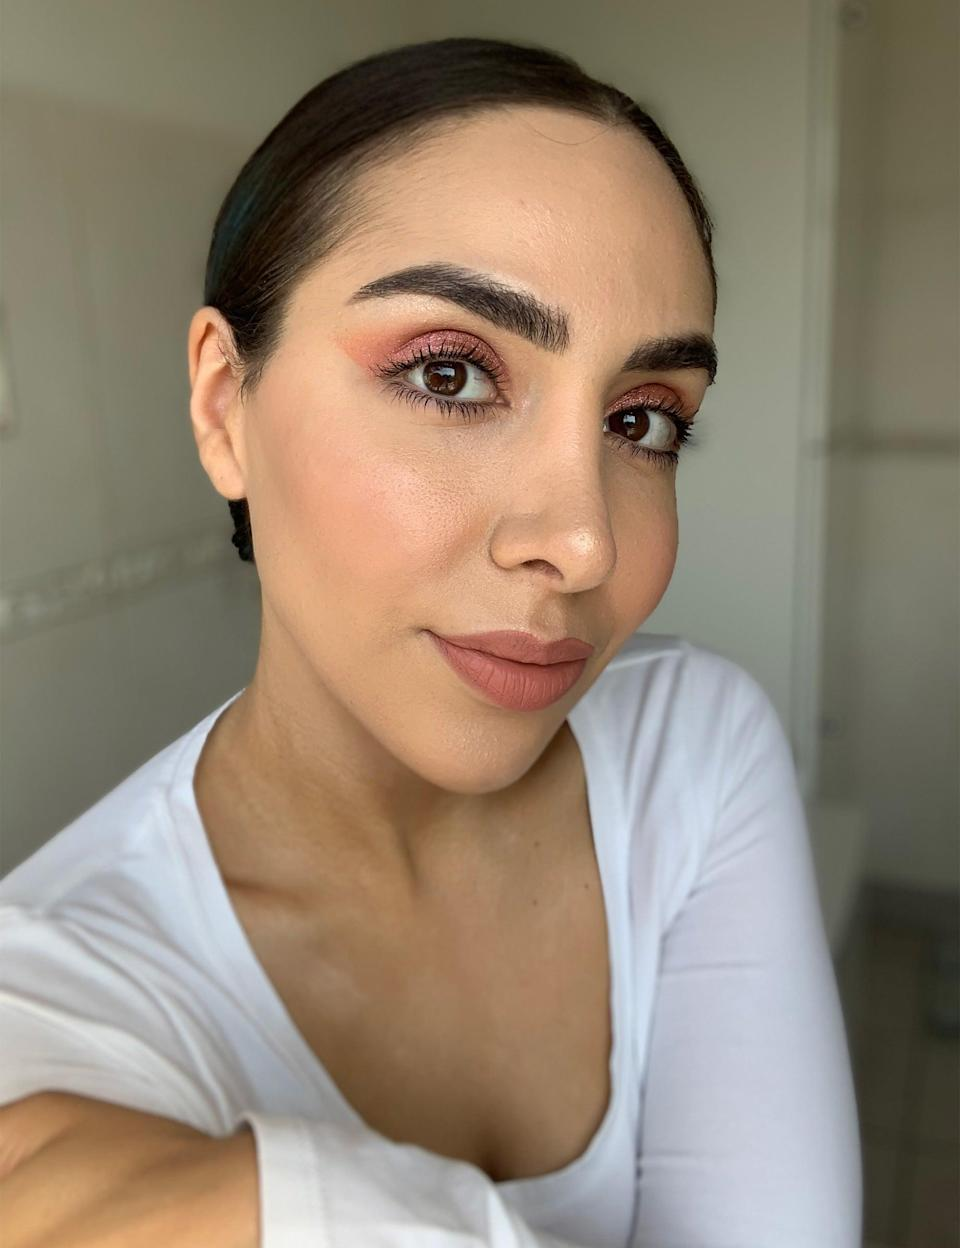 """Mario's <a href=""""https://www.cultbeauty.co.uk/makeup-by-mario-master-metallics-eyeshadow-palette.html"""" rel=""""nofollow noopener"""" target=""""_blank"""" data-ylk=""""slk:Master Metallics Eyeshadow Palette, £41"""" class=""""link rapid-noclick-resp"""">Master Metallics Eyeshadow Palette, £41</a>, is a beautiful collection of jewel tones and gold hues. With mattes reigning supreme, metallics feel somewhat outdated to me but the pictures on Mario's <a href=""""https://www.instagram.com/p/CMNm76slvgt/"""" rel=""""nofollow noopener"""" target=""""_blank"""" data-ylk=""""slk:Instagram"""" class=""""link rapid-noclick-resp"""">Instagram</a> persuaded me to give it a go. Again, brushes don't pick up the pigment (unless wet) so Mario suggests using your finger instead. This worked a treat and I blanketed my lids in the pretty pink colour. I expected something very lurid at first swipe but it lent my lids an understated sheen and the eyeshadow can be layered up for a deeper colour. Just like the metal palette, there was no dusty fallout so I didn't have to tidy up or redo my foundation. Personally, this isn't a palette I'd use every day but for festivals and nights out, it's perfect. <br><br>The blush and lipstick I'm wearing here aren't Makeup by Mario, nor are they available at Cult Beauty just yet, but you can shop many more MbM products direct from his website: <a href=""""https://www.makeupbymario.com/"""" rel=""""nofollow noopener"""" target=""""_blank"""" data-ylk=""""slk:www.makeupbymario.com"""" class=""""link rapid-noclick-resp"""">www.makeupbymario.com</a>.<br><br><strong>Makeup By Mario</strong> Master Metallics Eyeshadow Palette, $, available at <a href=""""https://www.cultbeauty.co.uk/makeup-by-mario-master-metallics-eyeshadow-palette.html"""" rel=""""nofollow noopener"""" target=""""_blank"""" data-ylk=""""slk:Cult Beauty"""" class=""""link rapid-noclick-resp"""">Cult Beauty</a>"""